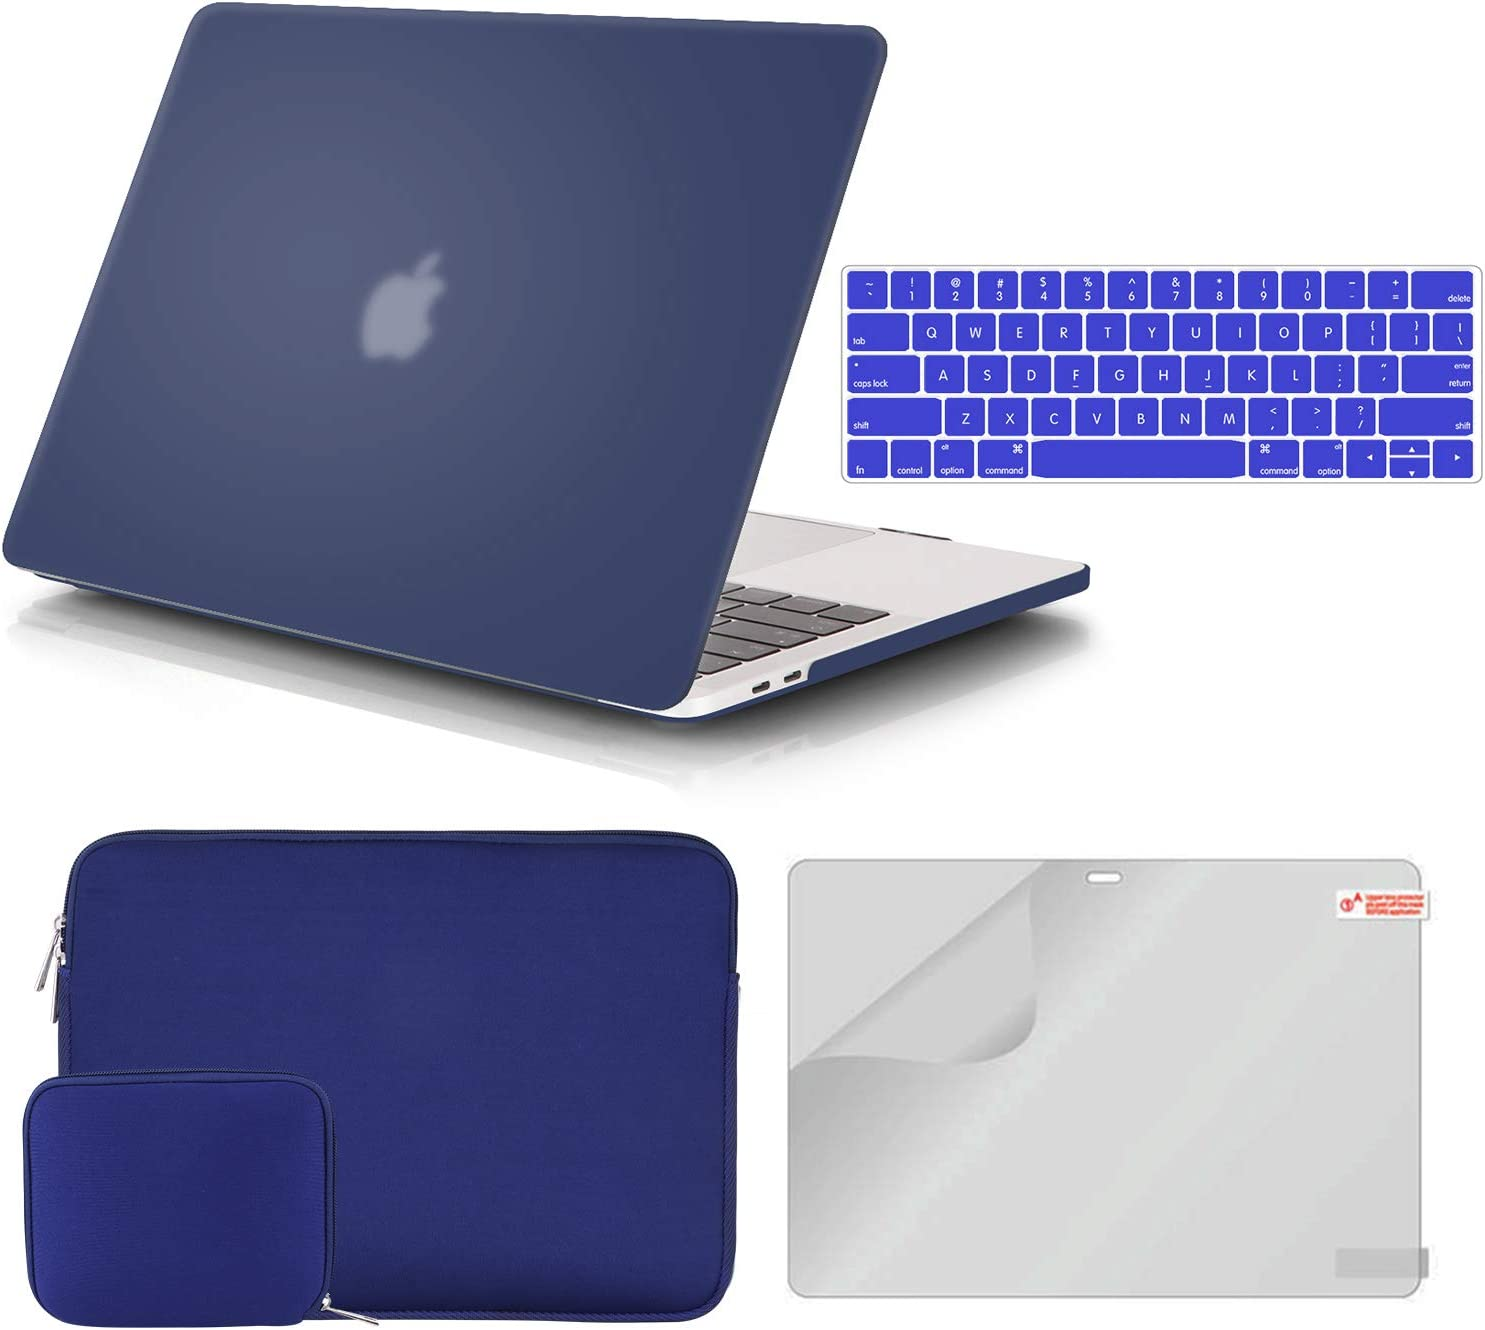 iCasso MacBook Air 13 Inch Case A1932 Bundle 4 in 1, Plastic Hard Shell Case, Sleeve, Screen Protector, Keyboard Cover and Small Pouch Compatible 2020 2019 2018 MacBook Air 13 Touch ID - Navy Blue